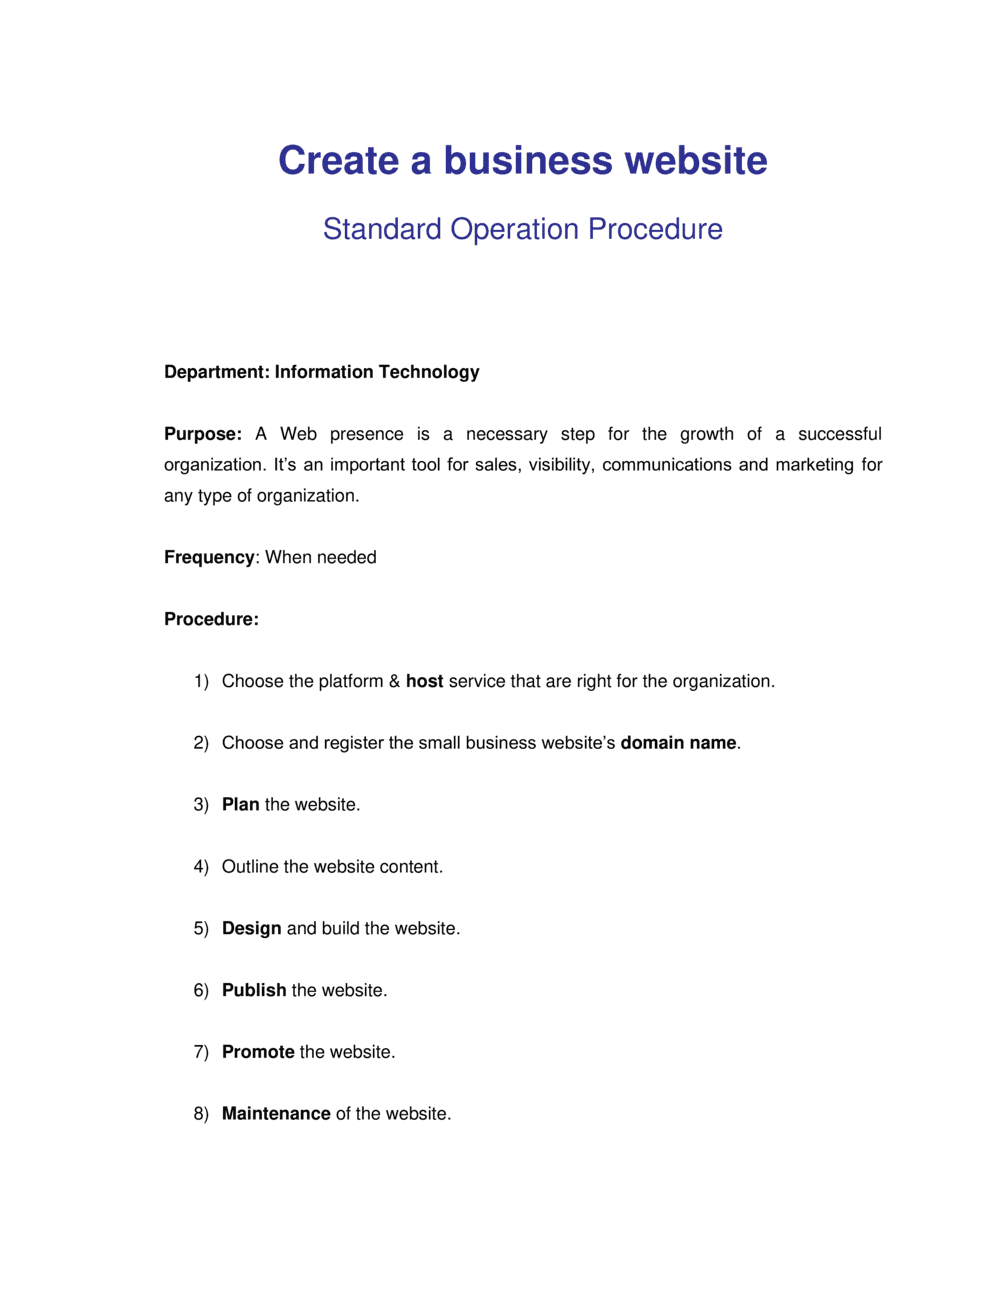 Business-in-a-Box's How to Create a Business Website Template